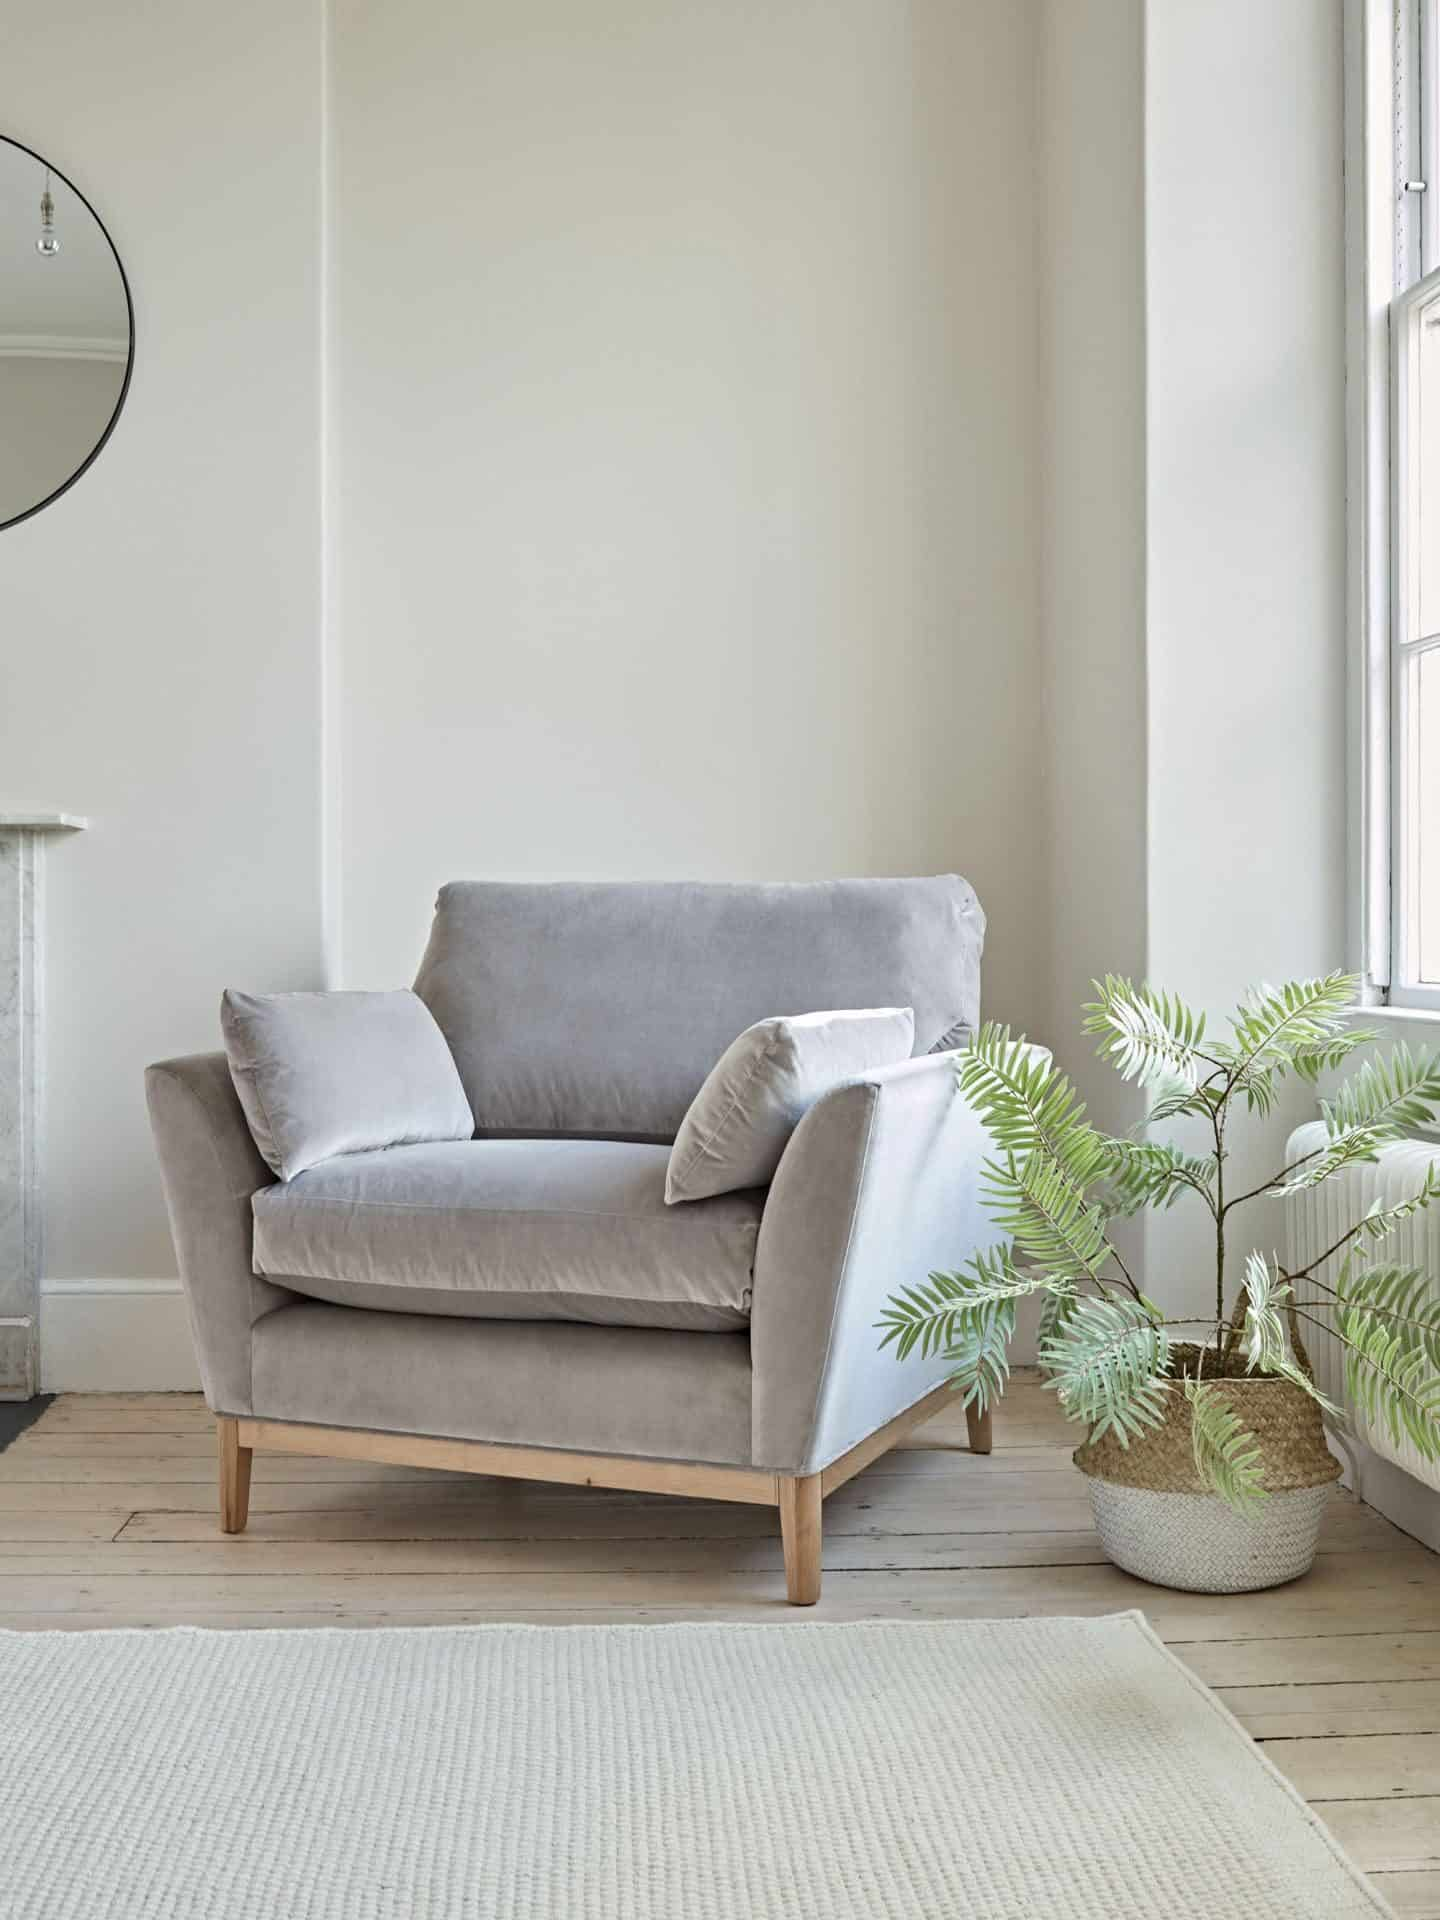 A grey armchair from Cox & Cox. Furniture can be found on furniture comparison website Kuldea